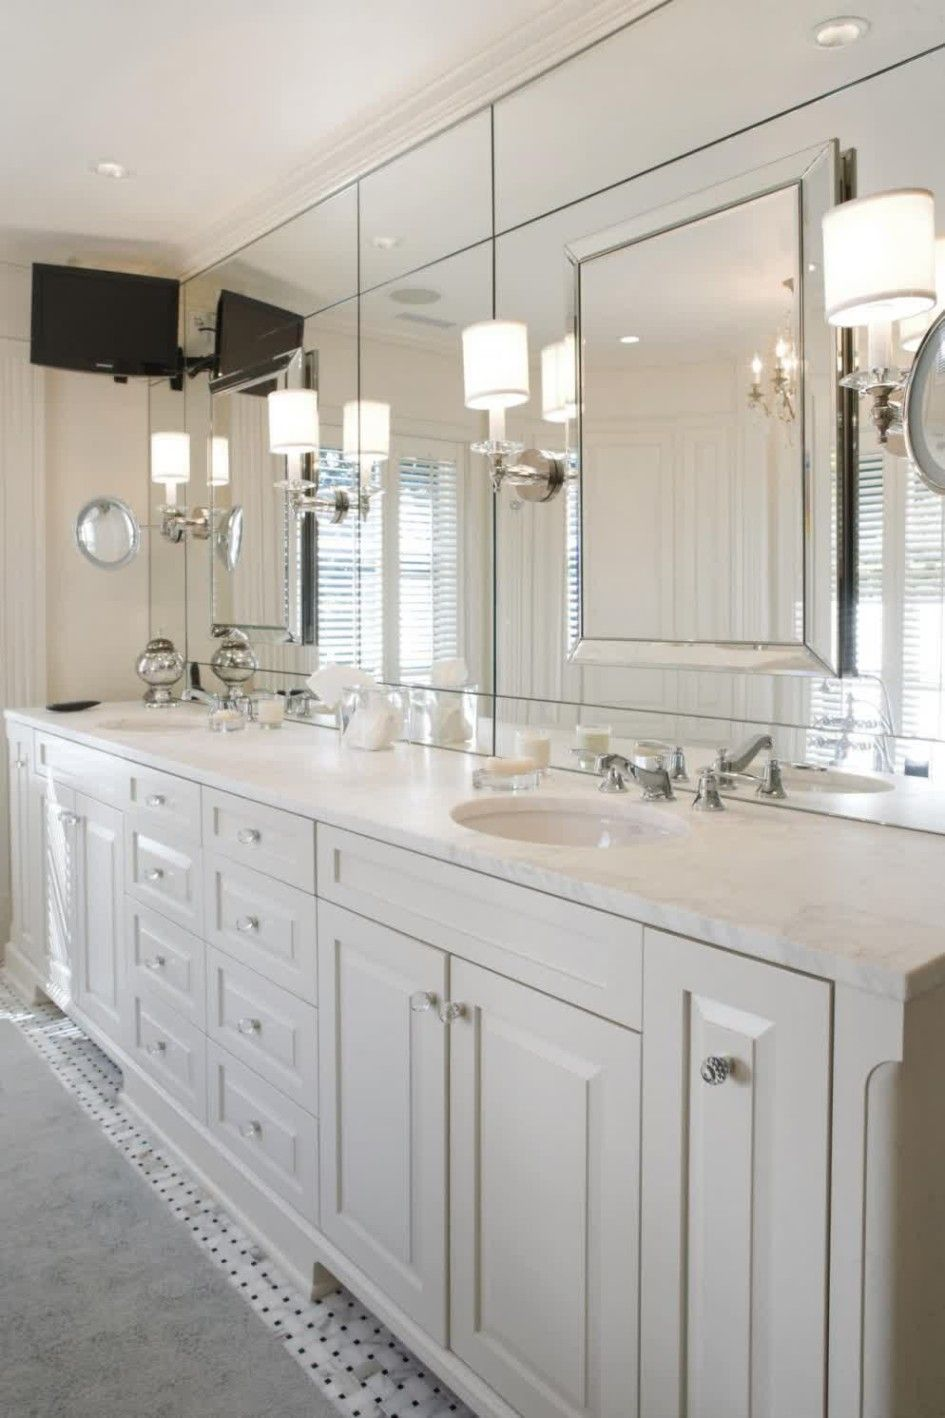 Bathroom Mirror Wall Lights Bathroom Ideas Modern Bathroom Wall Sconces With Large Frameless